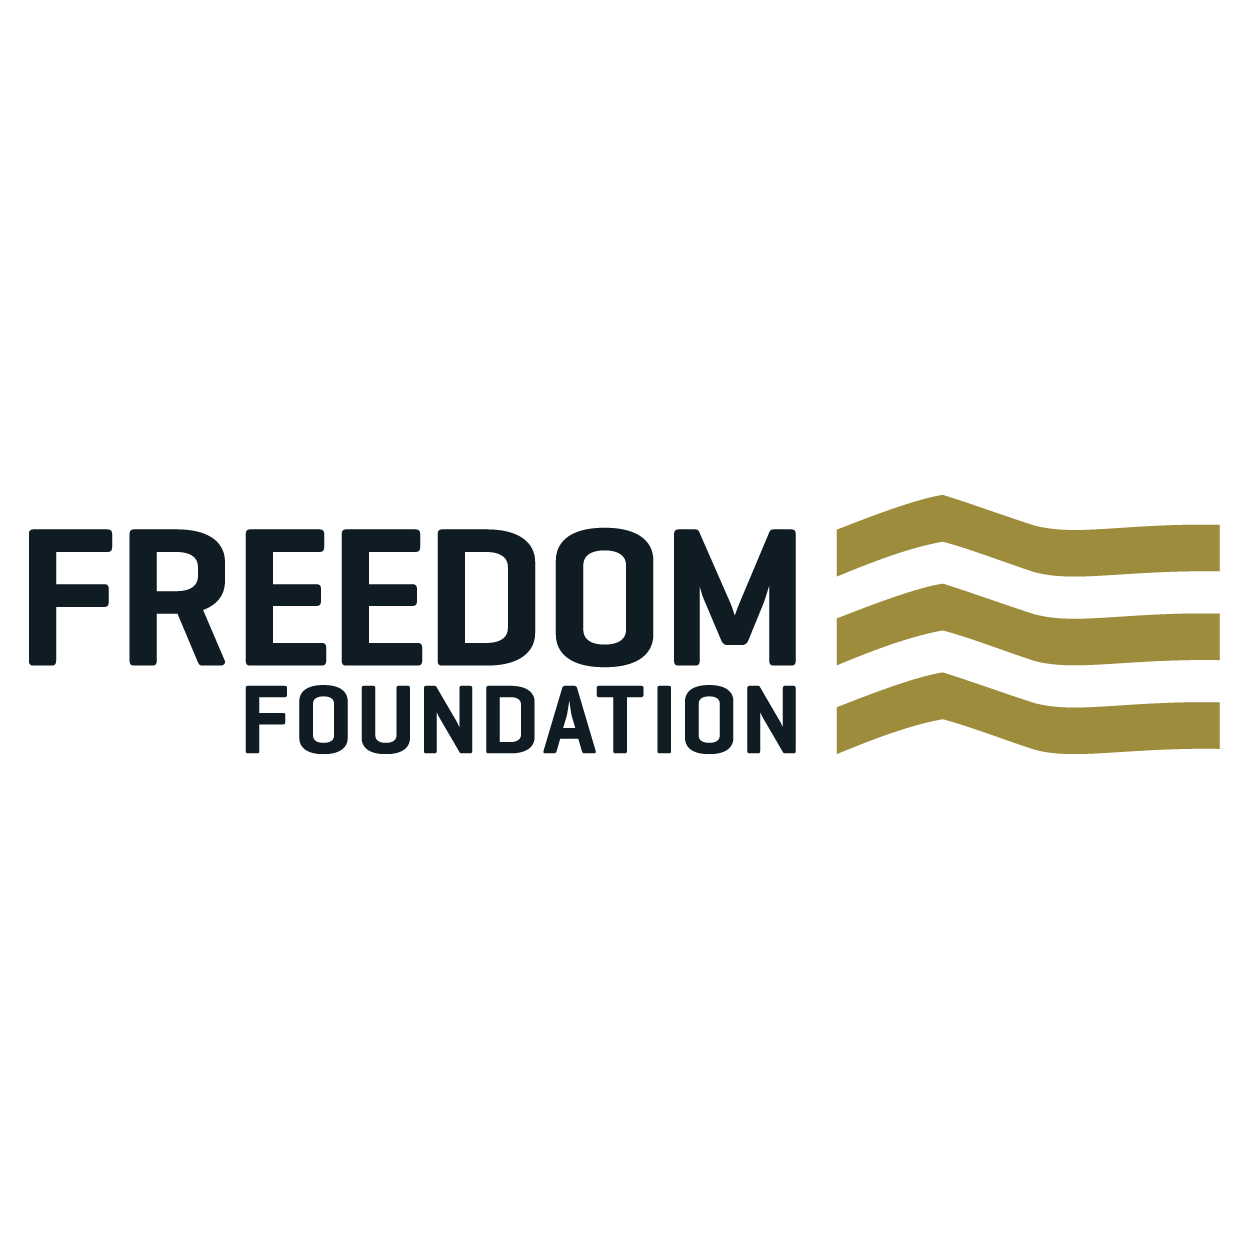 Freedom Foundation